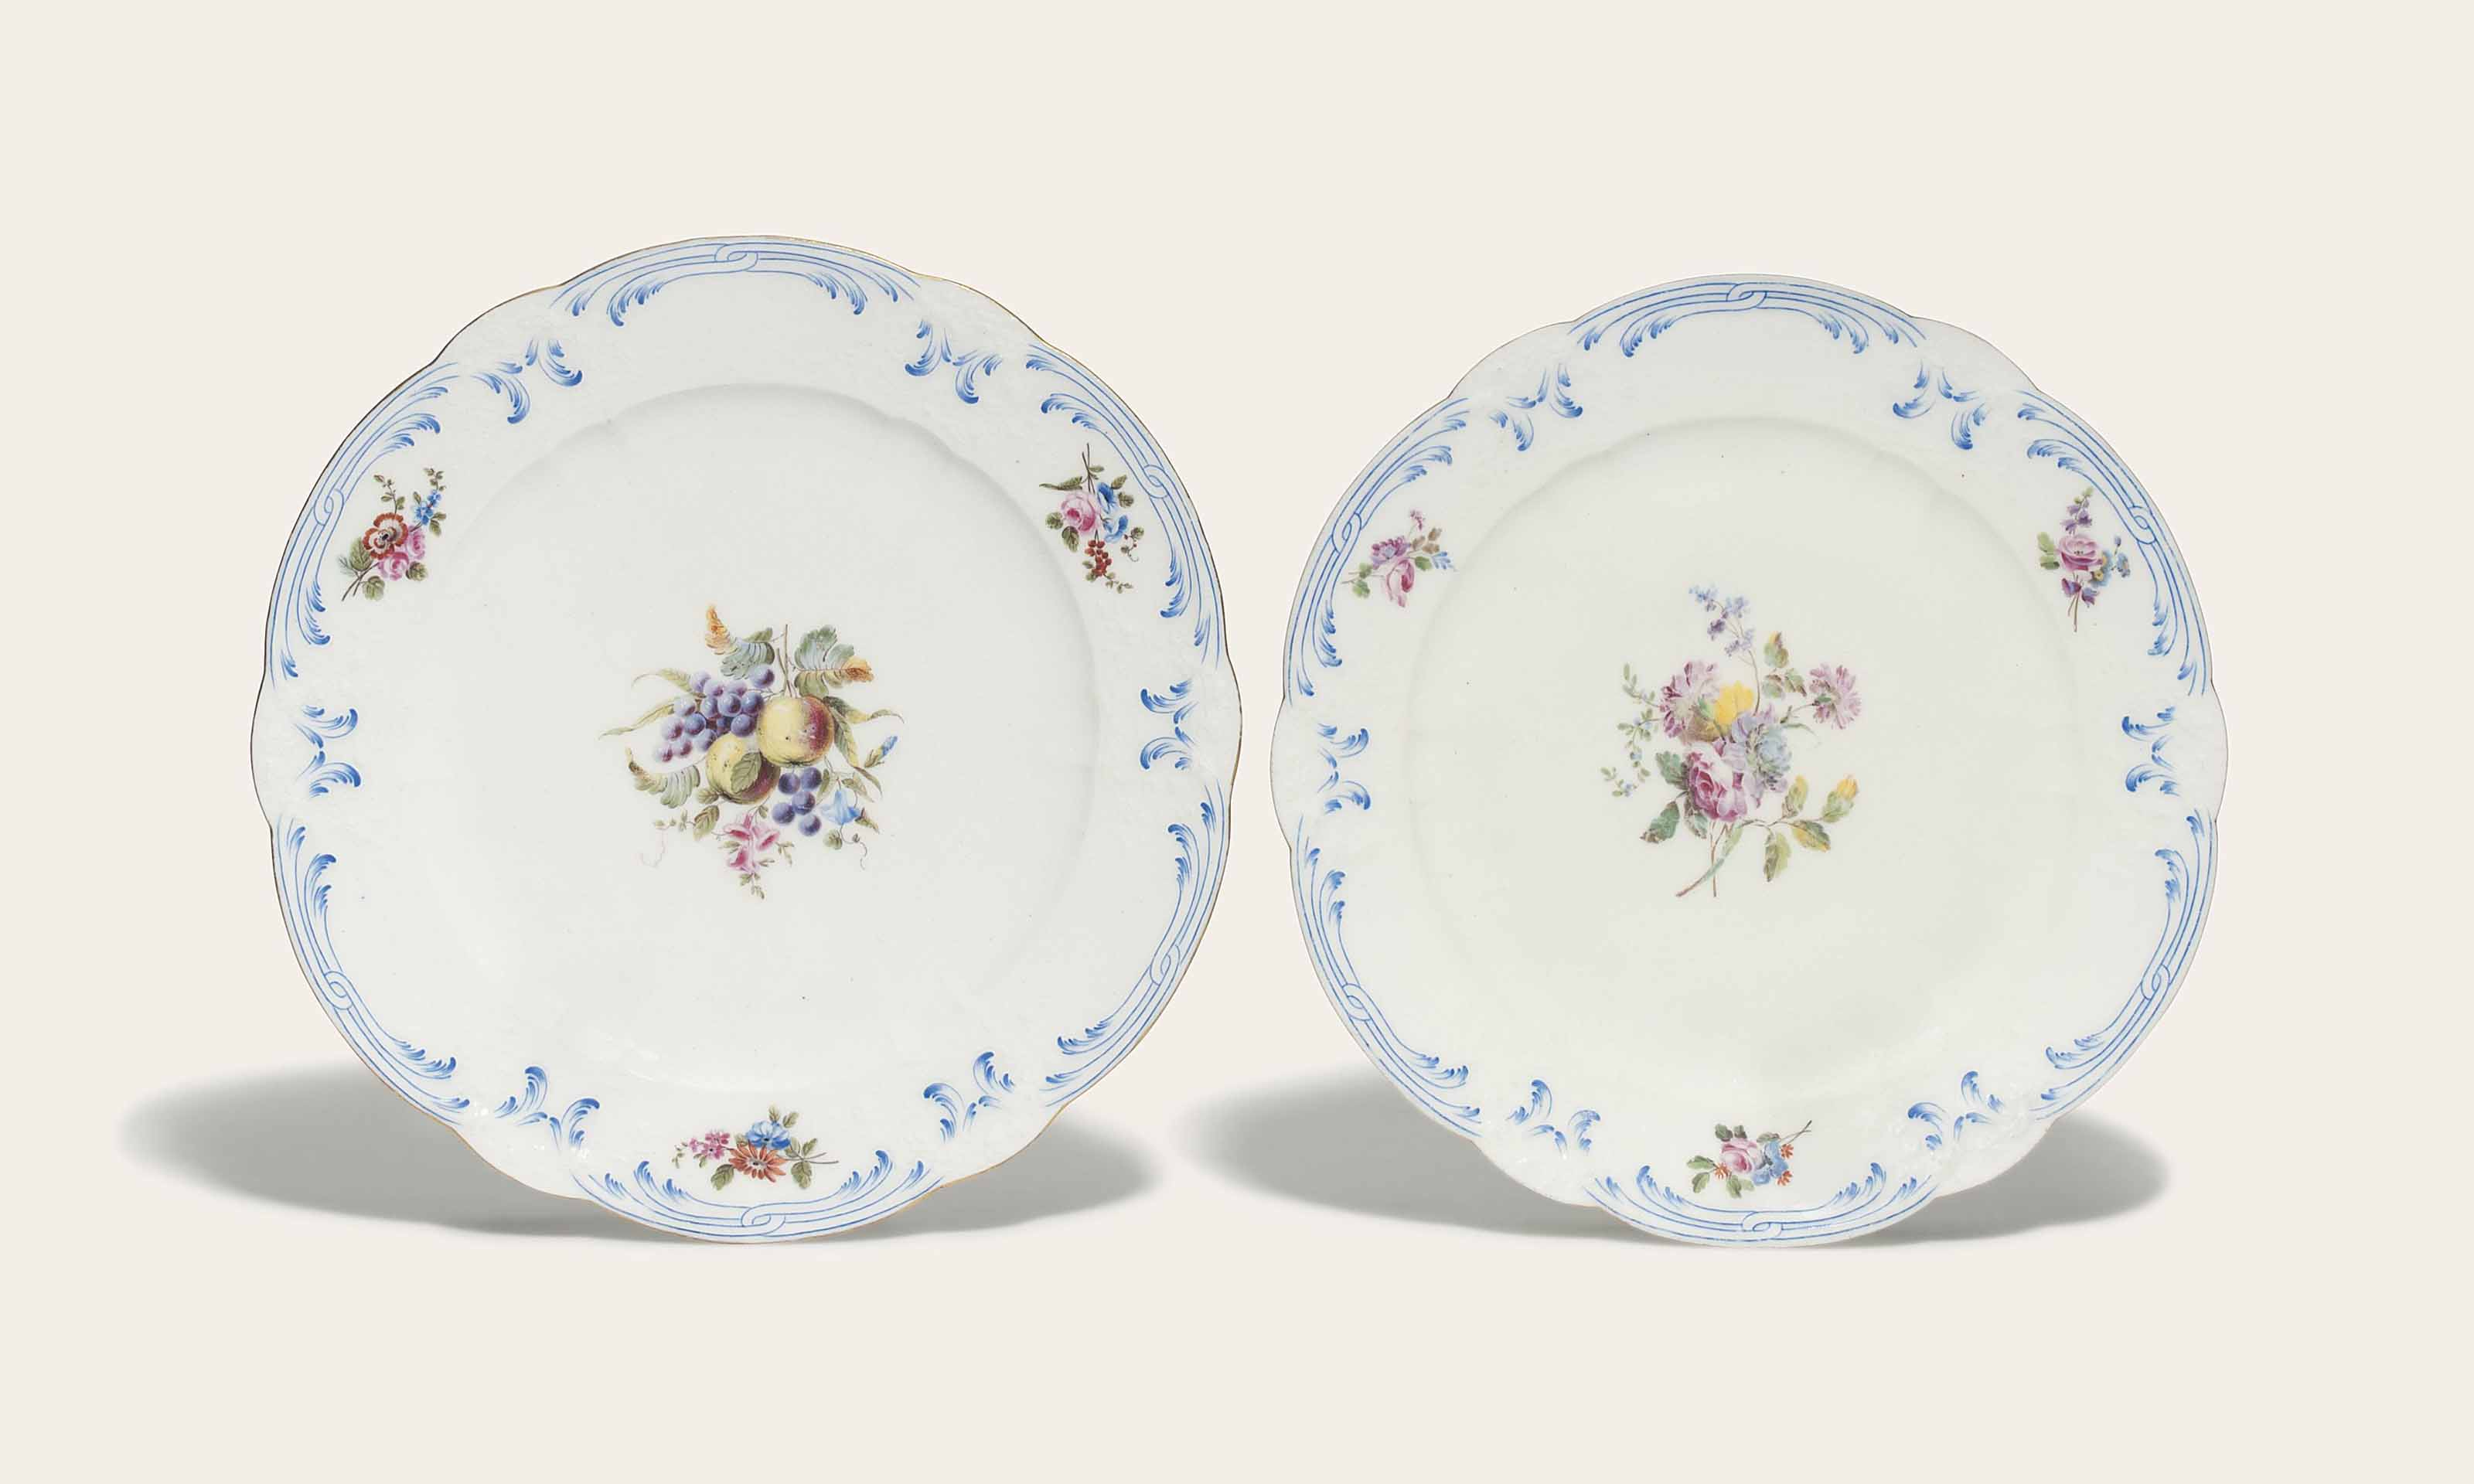 TWO SEVRES PLATES (PROBABLY AS